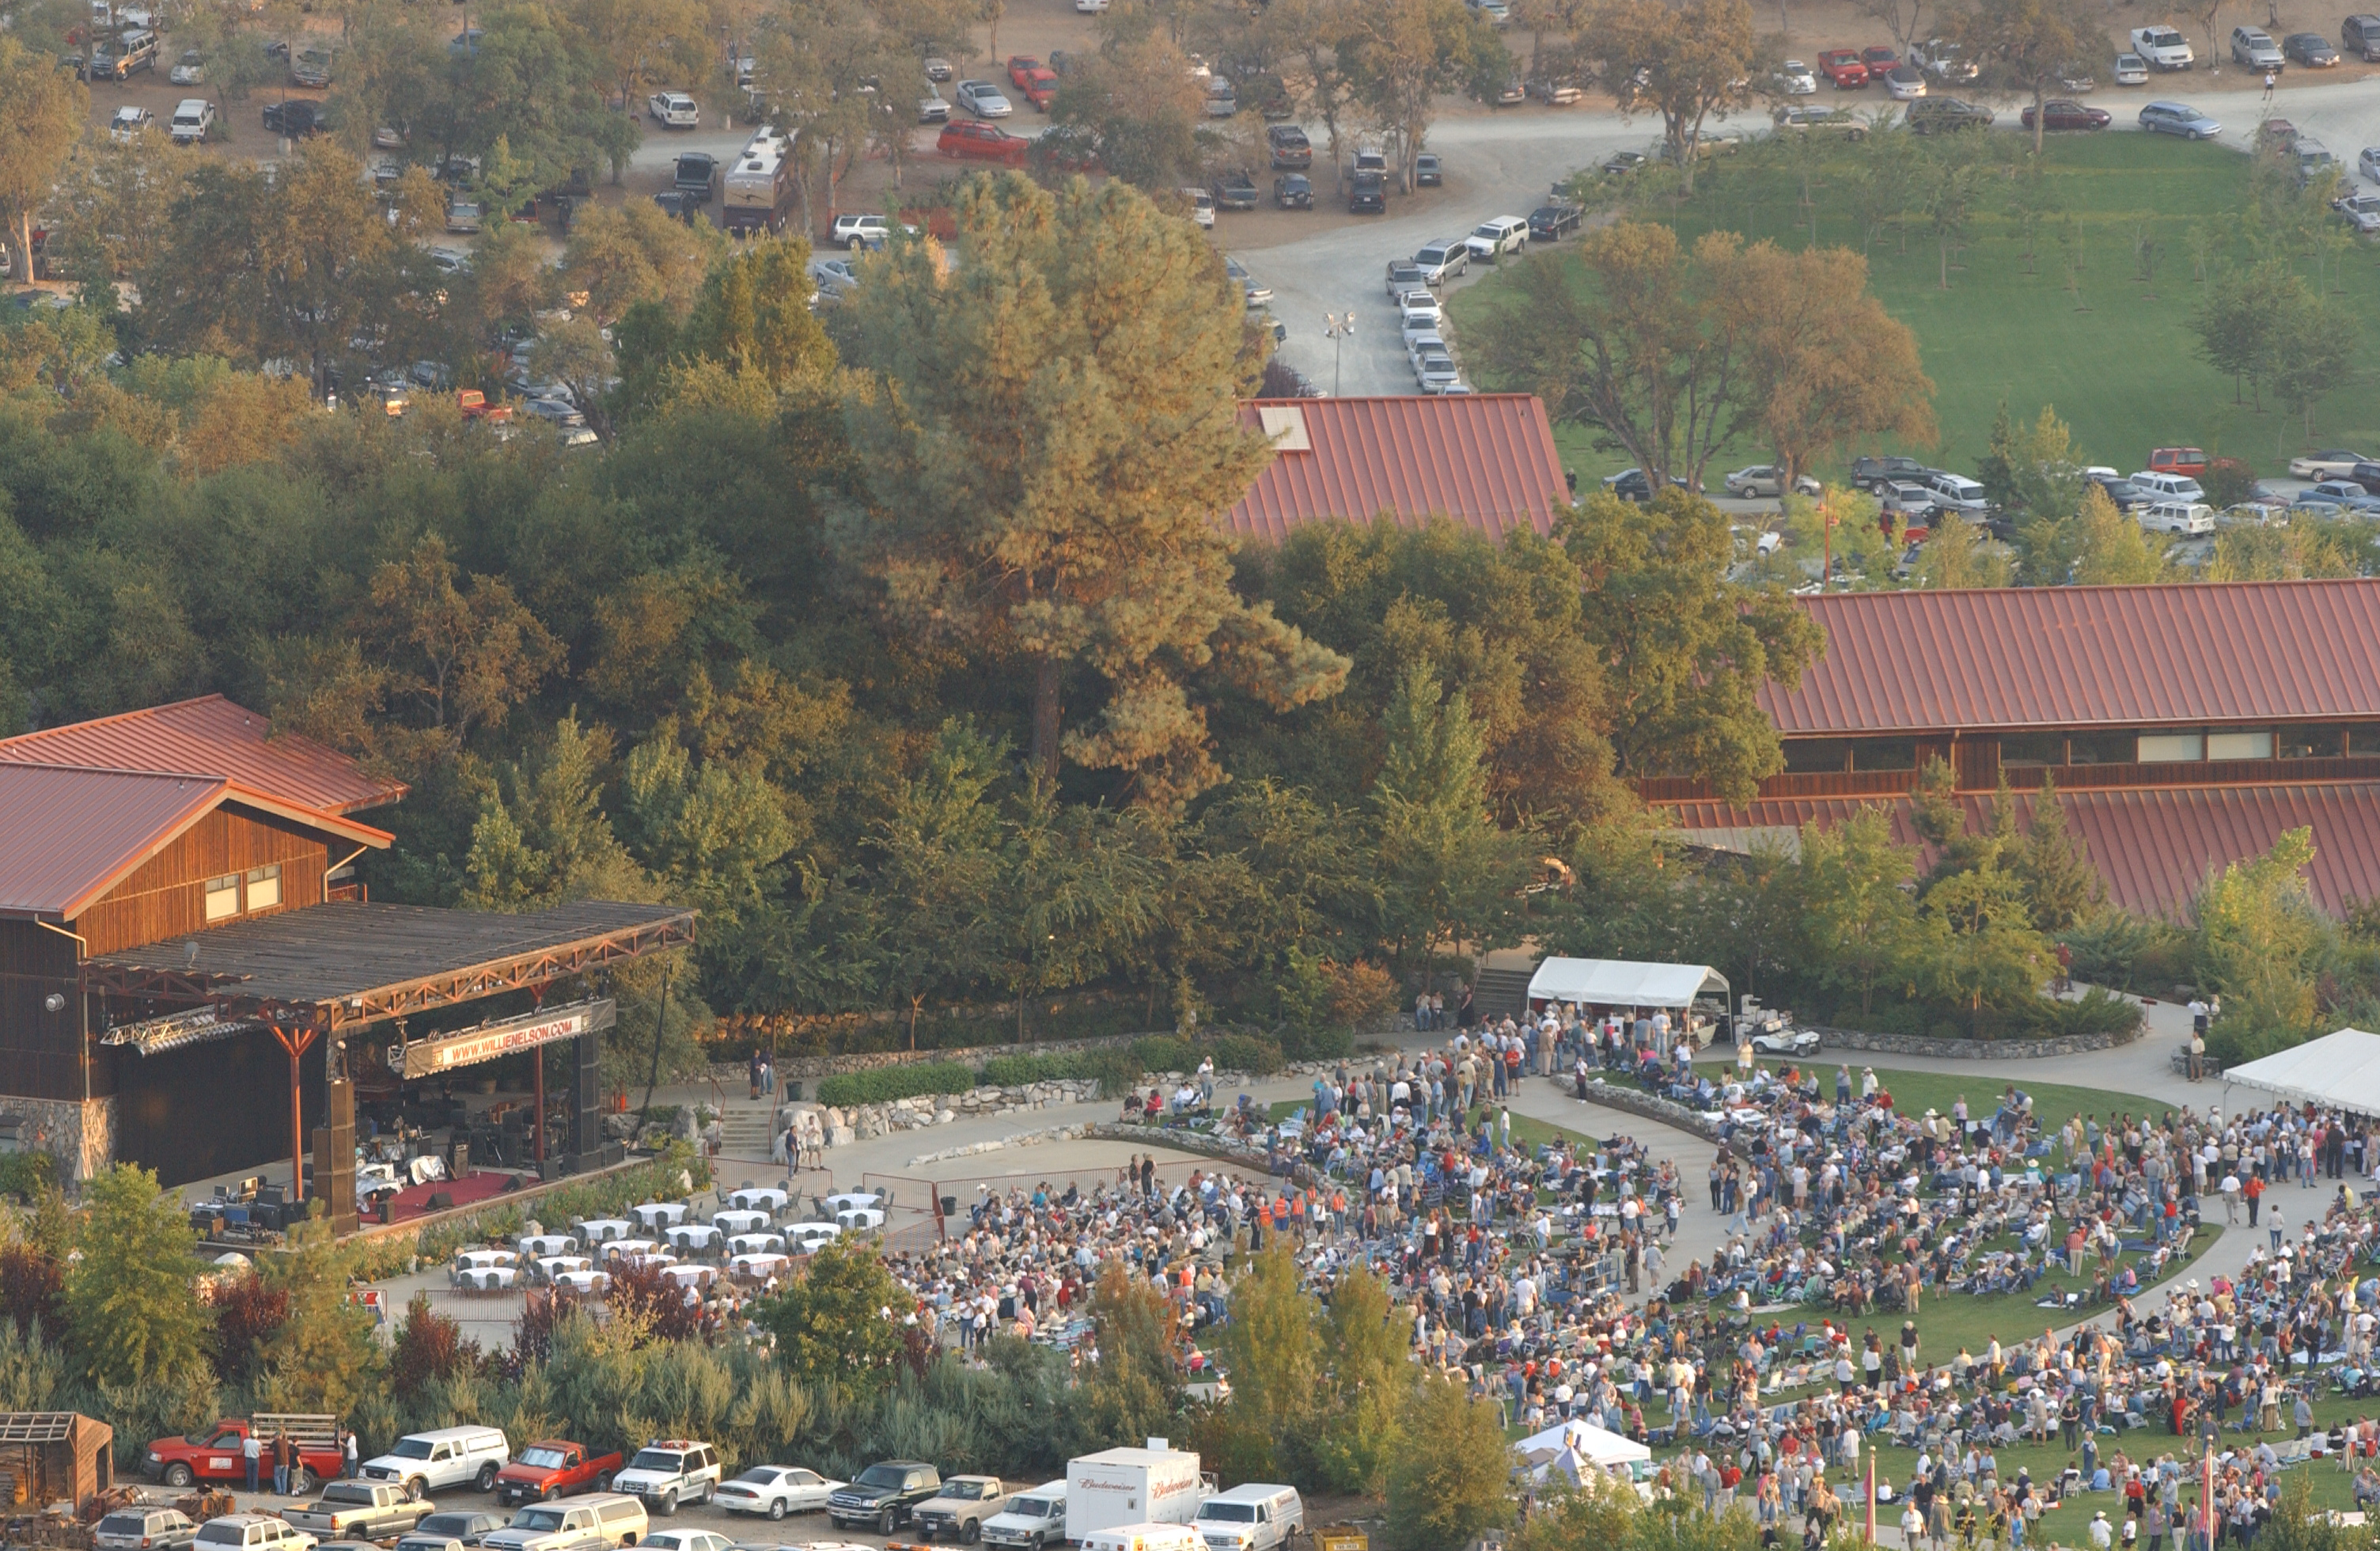 Ironstone Amphitheatre - Willie Nelson Concert in Murphys, CA